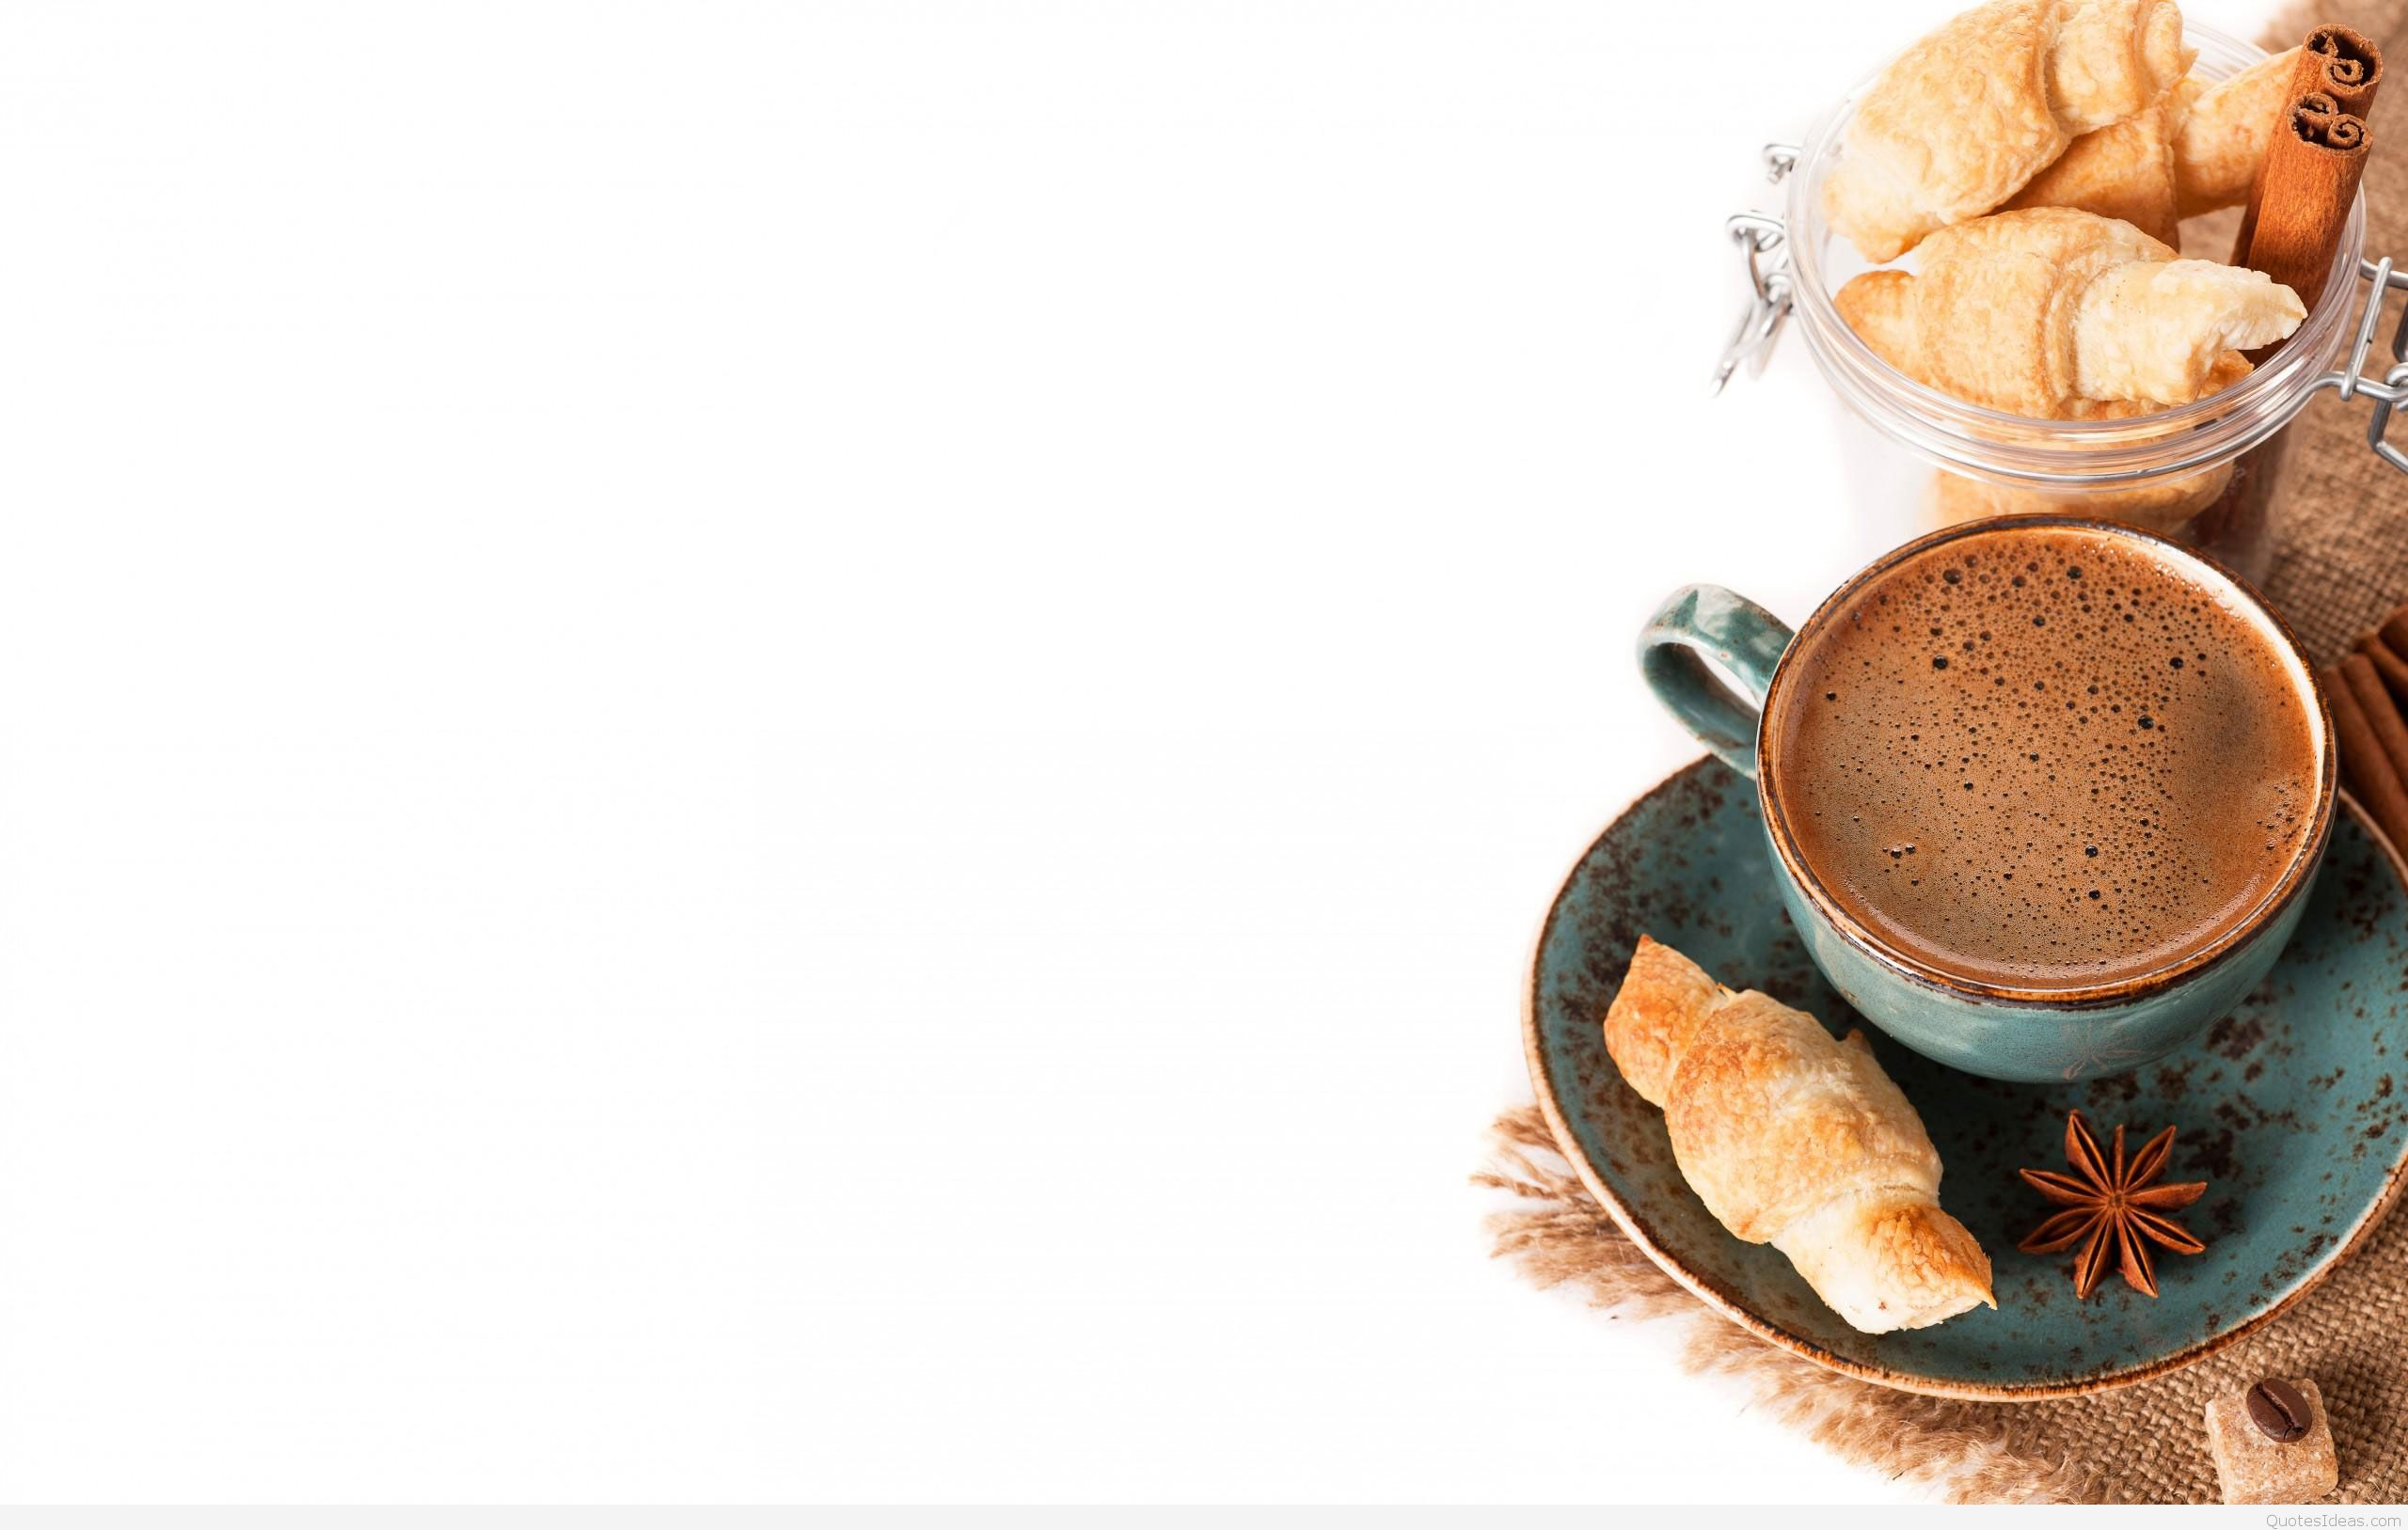 Coffee background good morning wallpaper